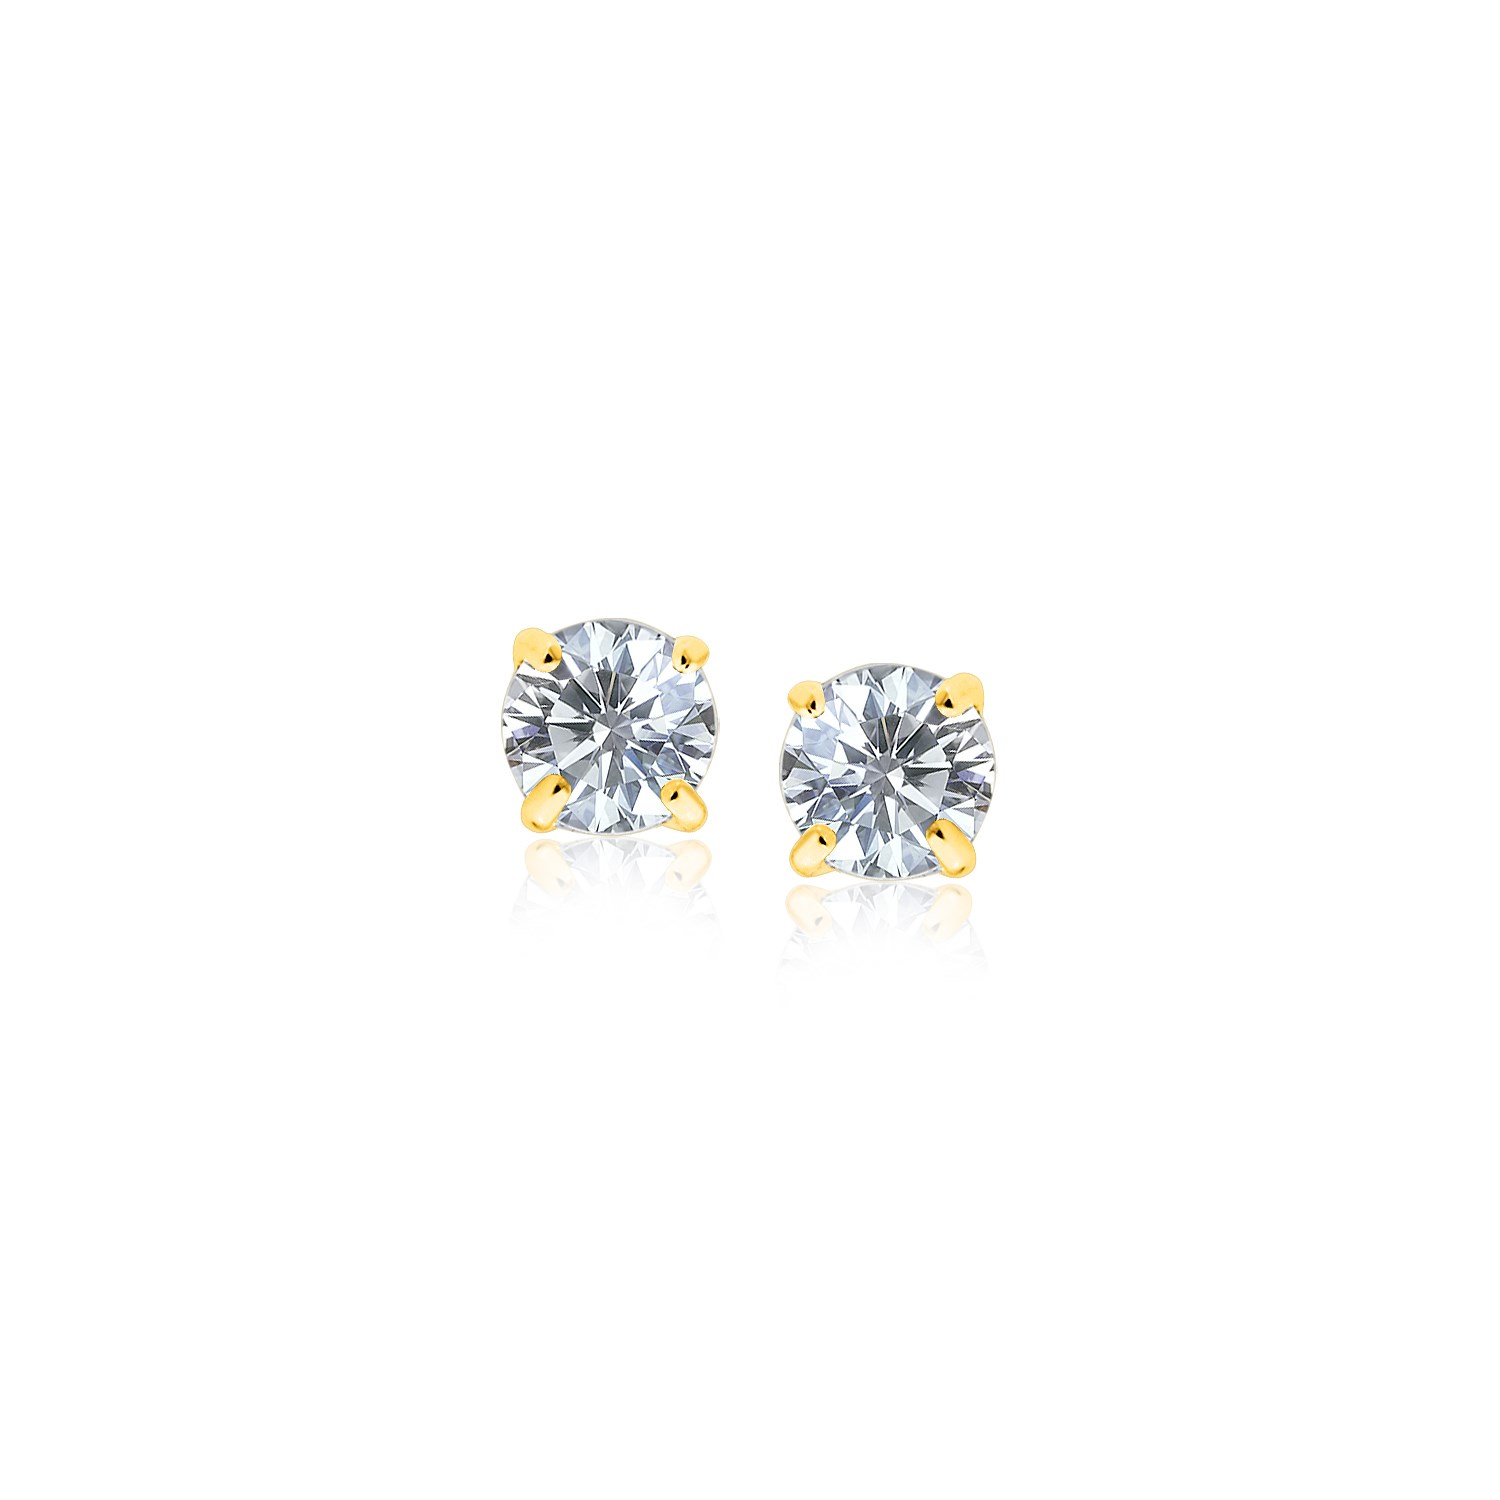 14K Yellow Gold Stud Earrings with White Hue Faceted Cubic Zirco